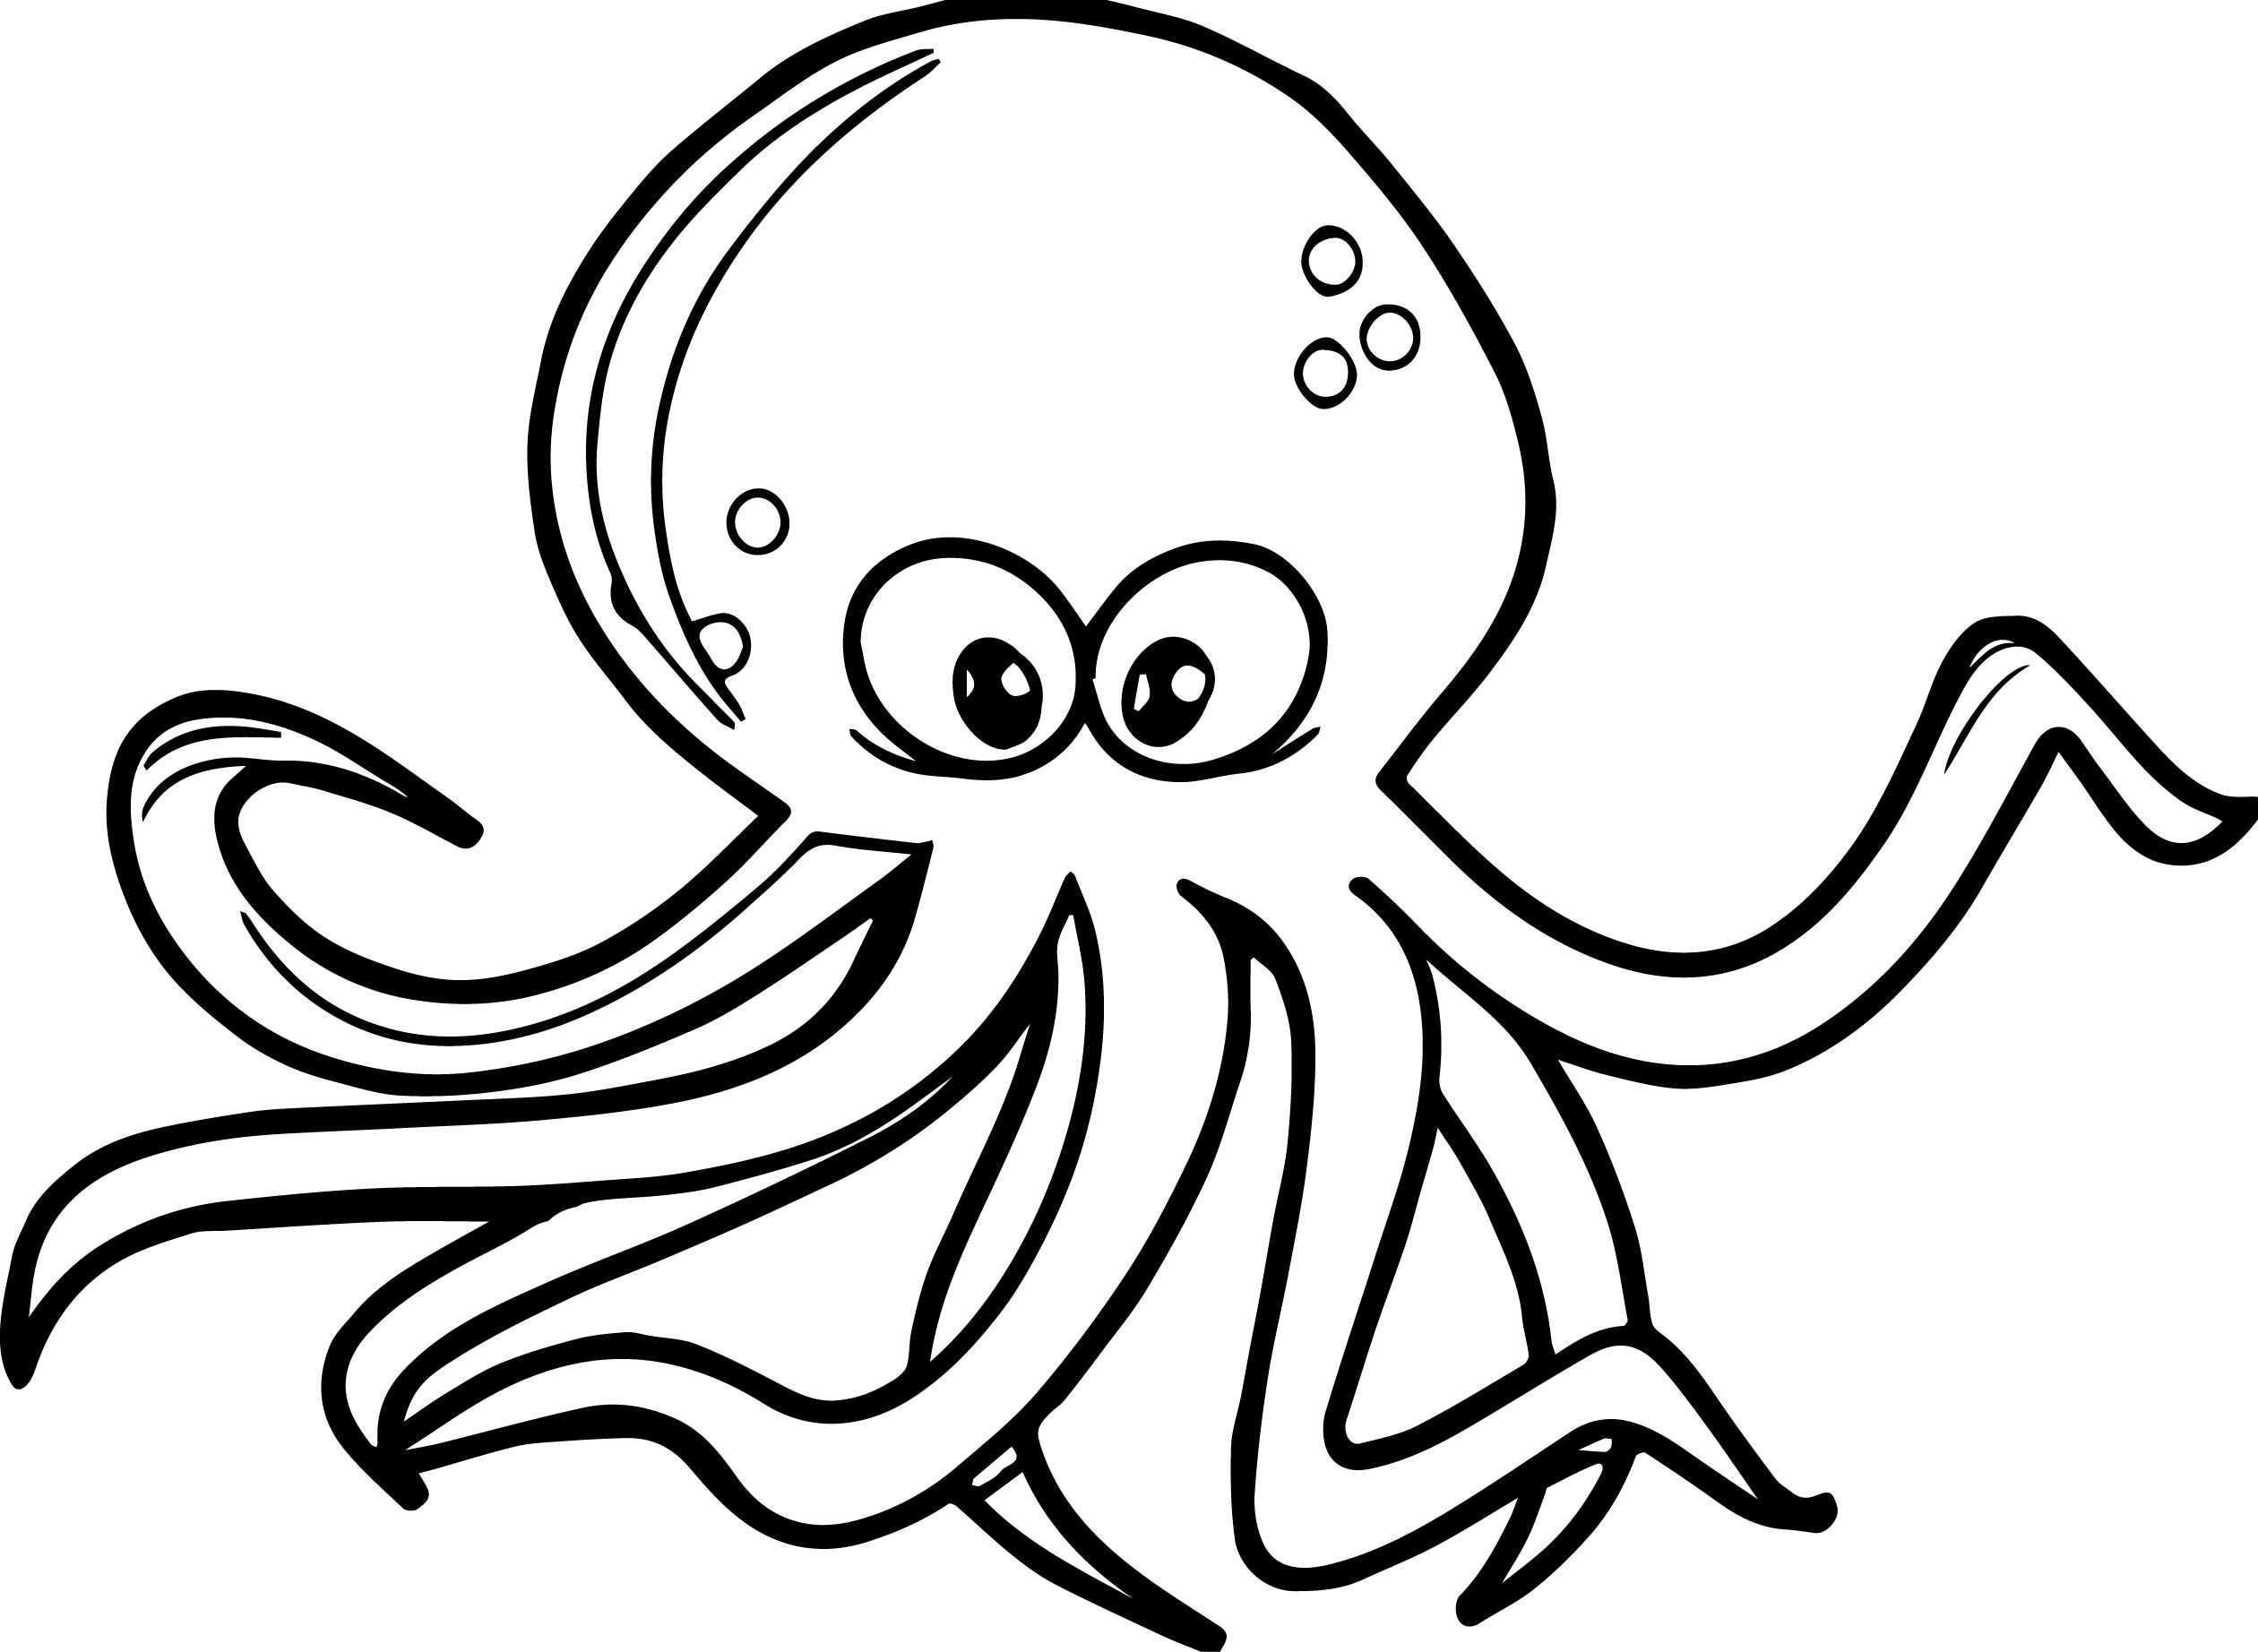 octopus for coloring download octopus coloring for free designlooter 2020 coloring for octopus